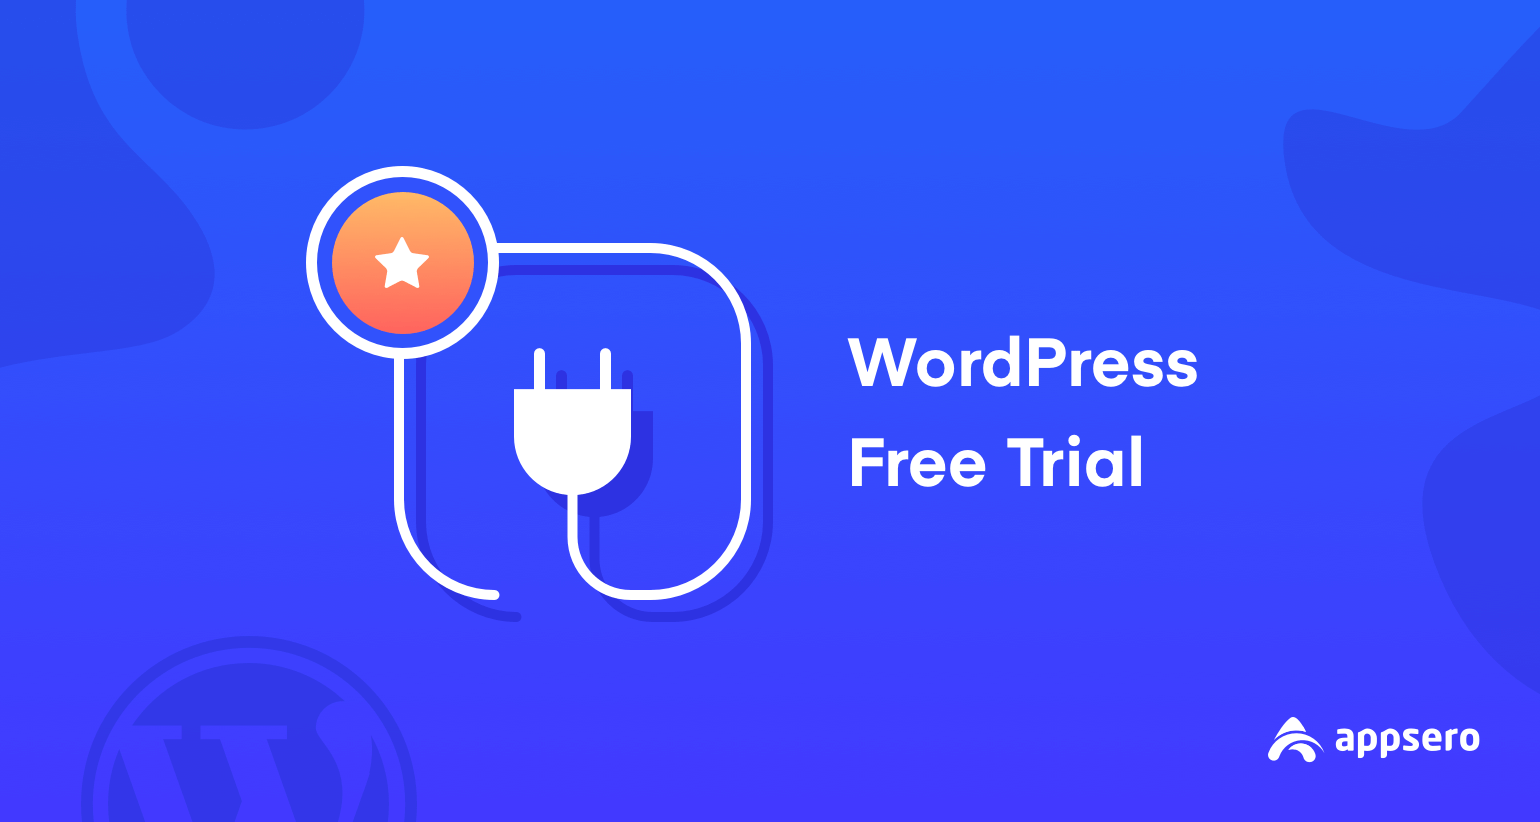 Offer Free Trials to Promote Your Premium WordPress Plugins & Themes